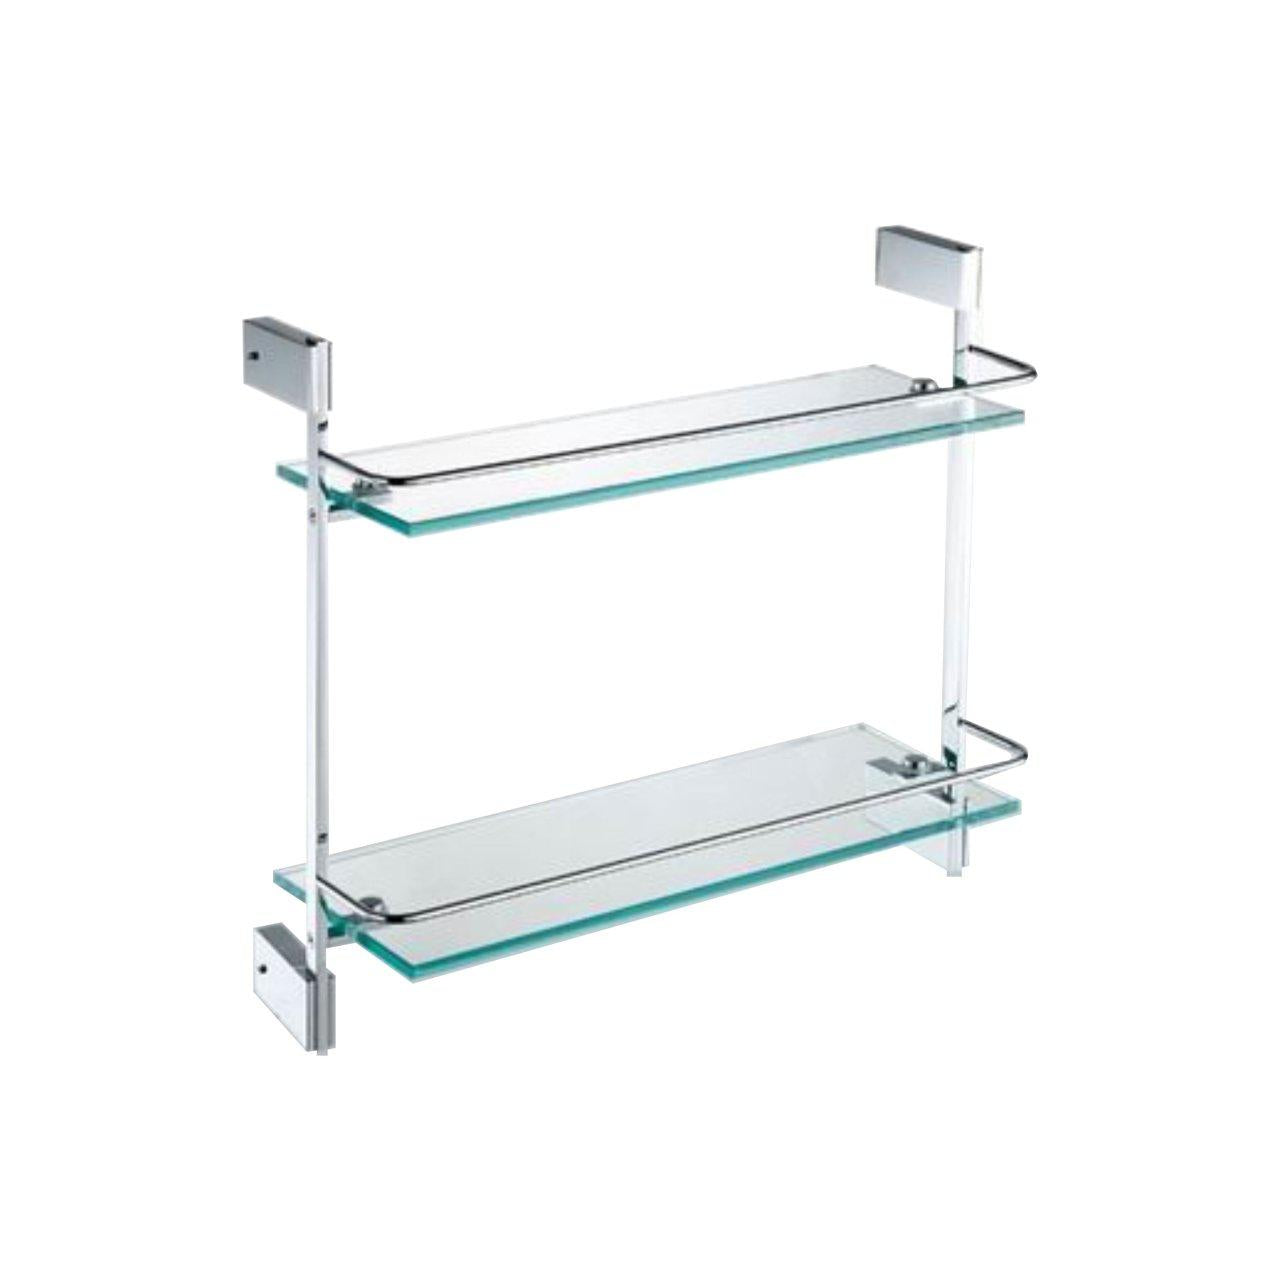 Kubebath Aqua Fino By Kubebath Double Glass Shelve 94012